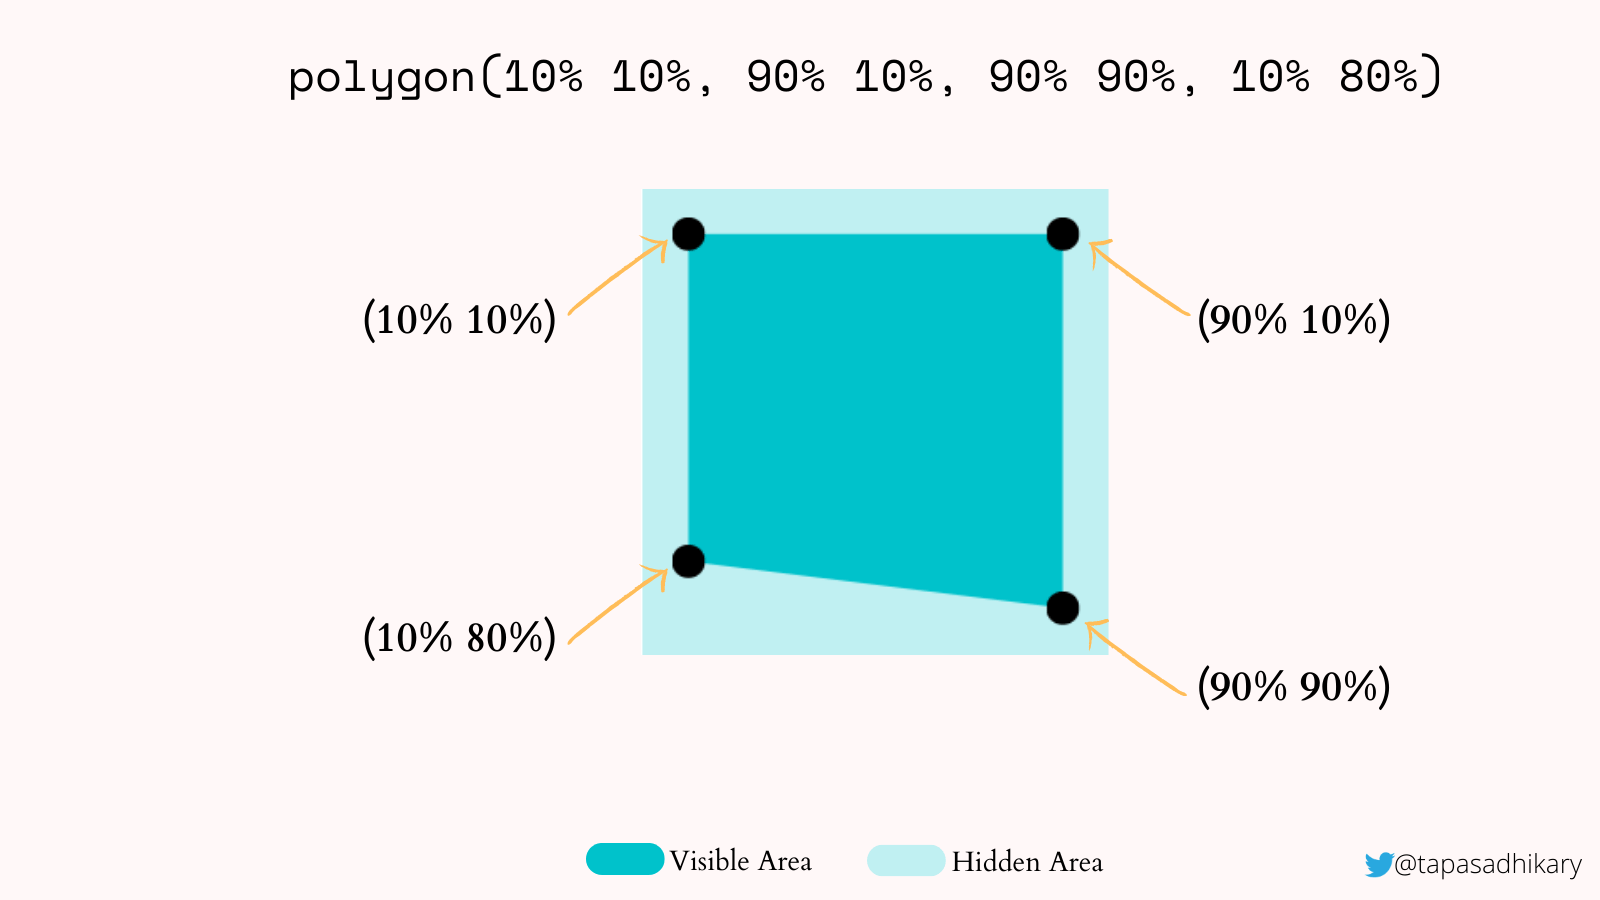 A square with four points inside of it located at 10% by 10%, 90% by 10%, 10% by 80% and 90% by 90%, creating the clipped area.